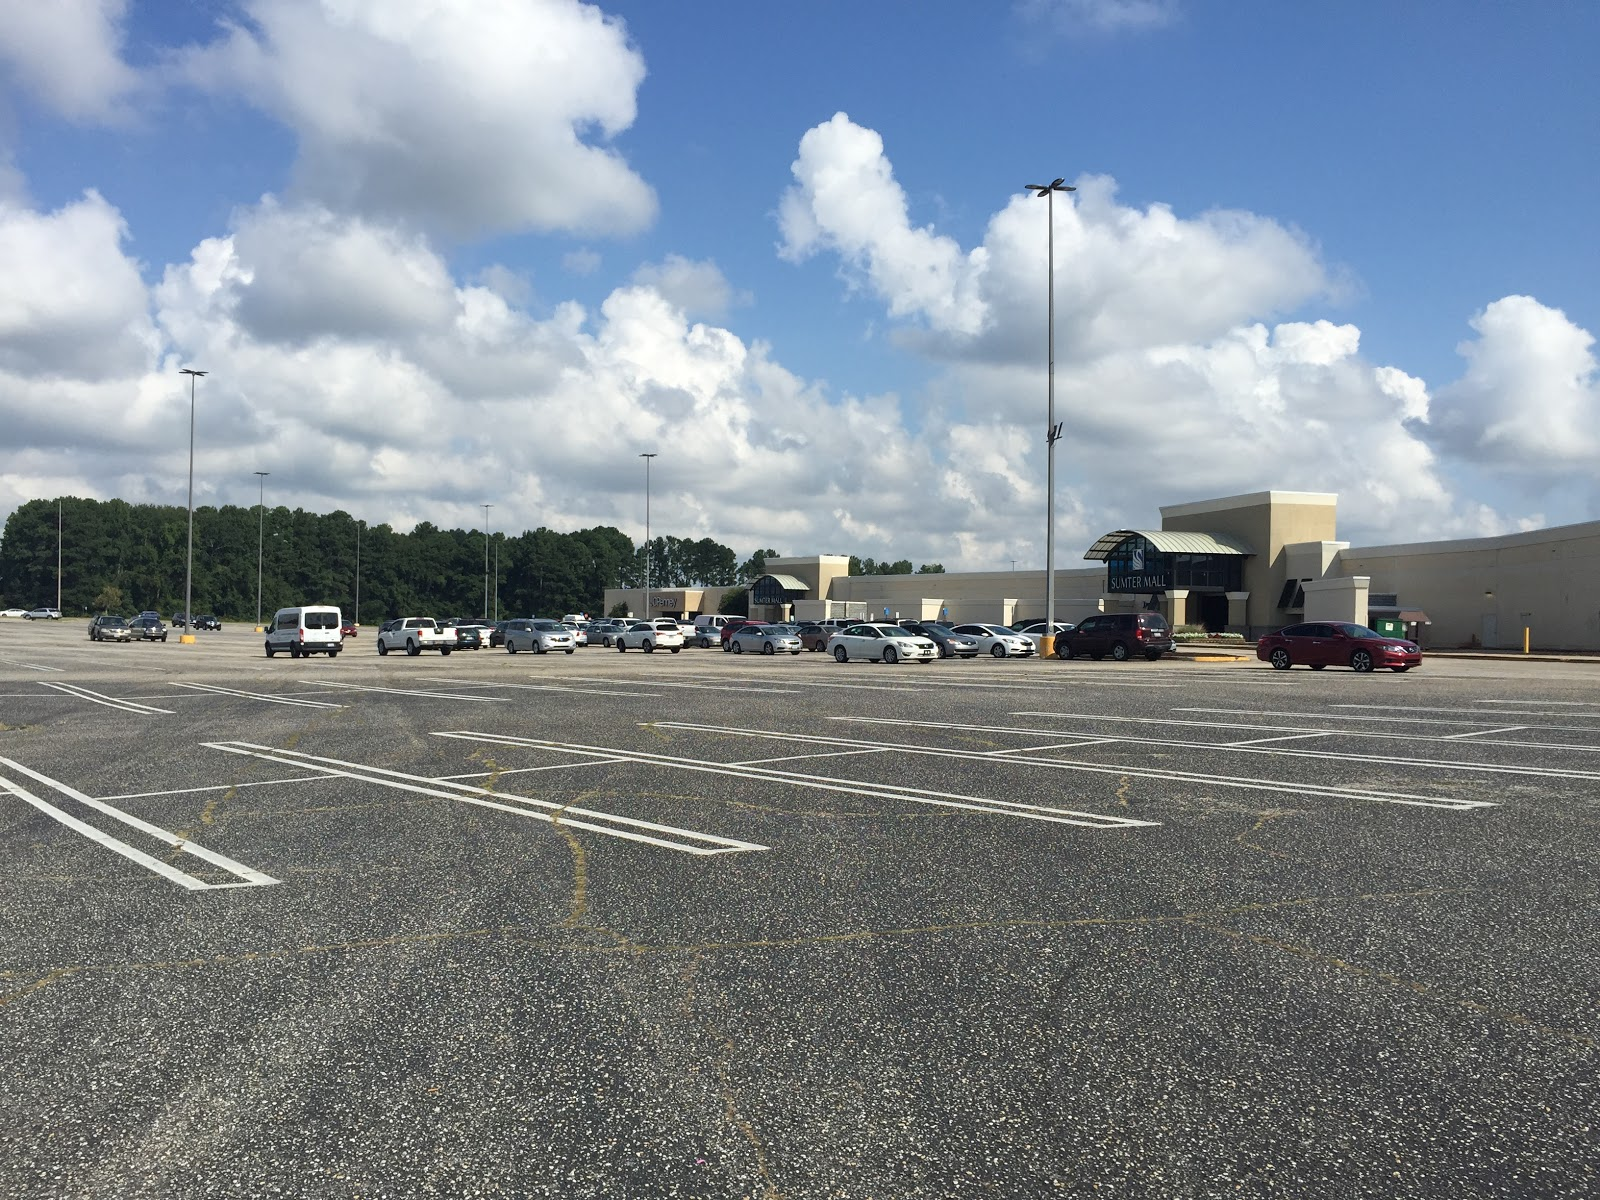 SkyMall : Retail History and Abandoned Airports: Sumter Mall